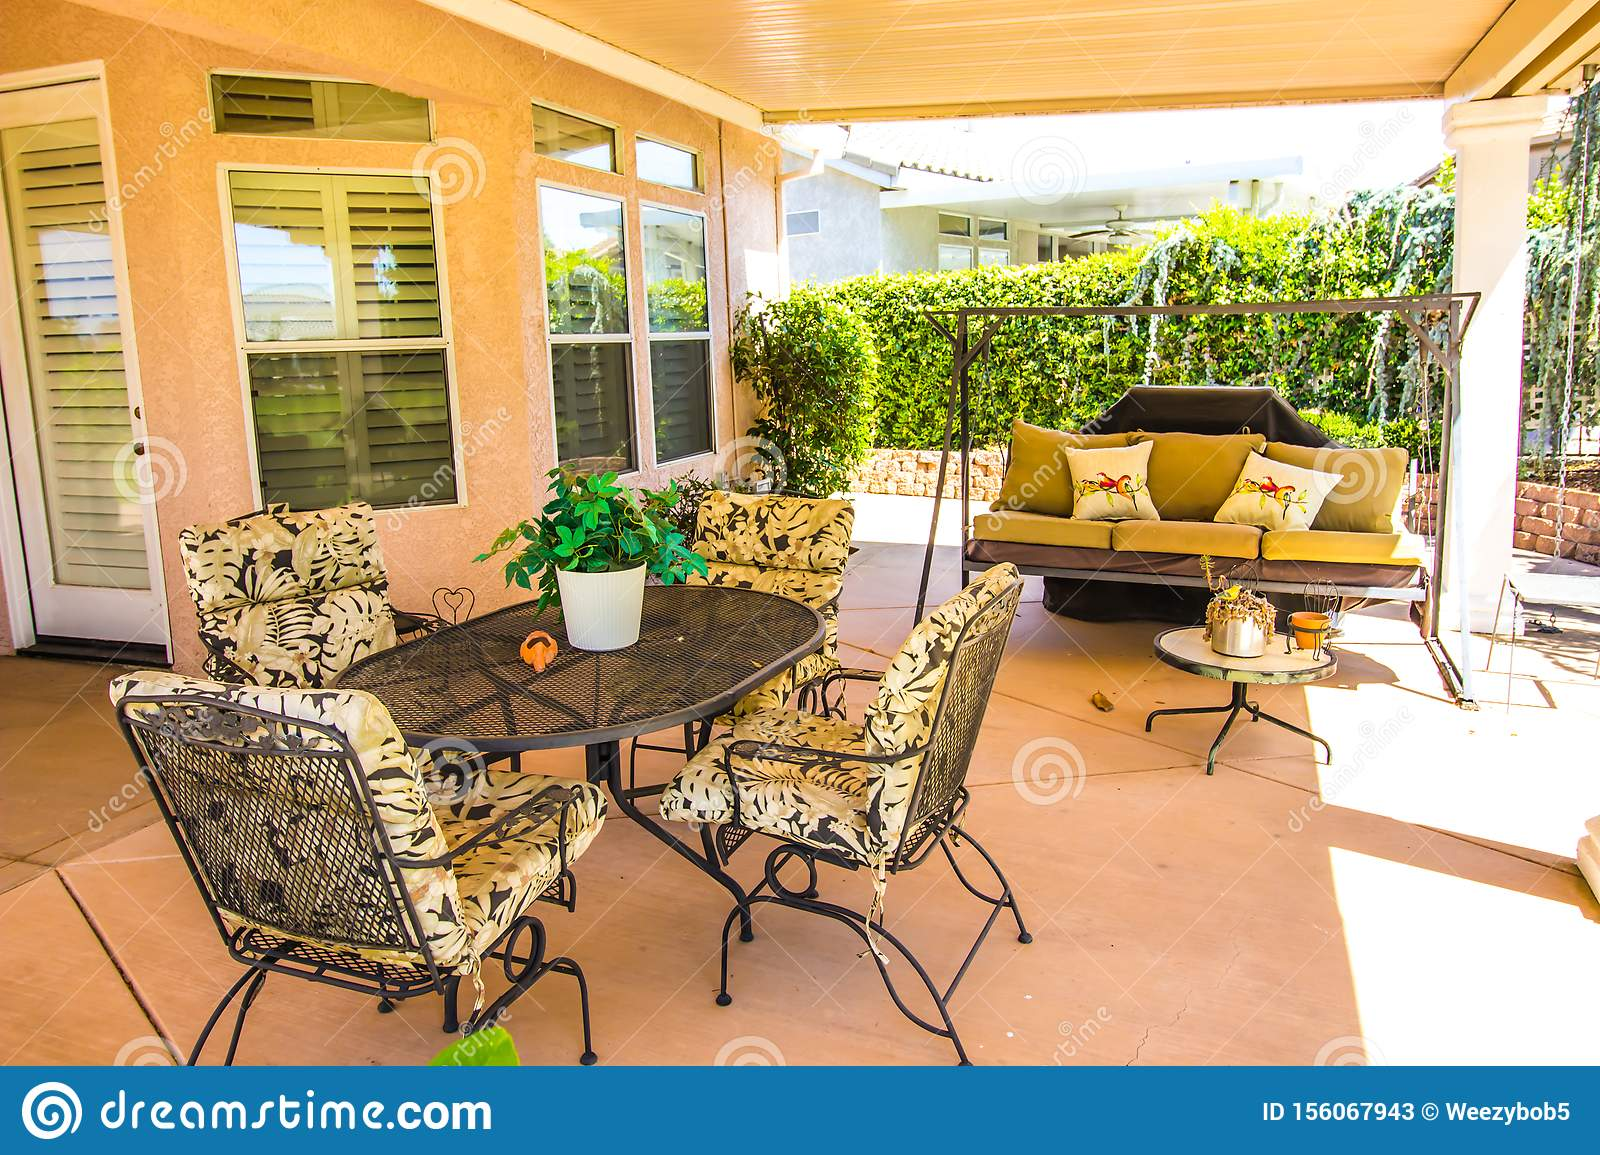 Outdoor Furniture Under Covered Patio Stock Image Image Of Outdoors House 156067943